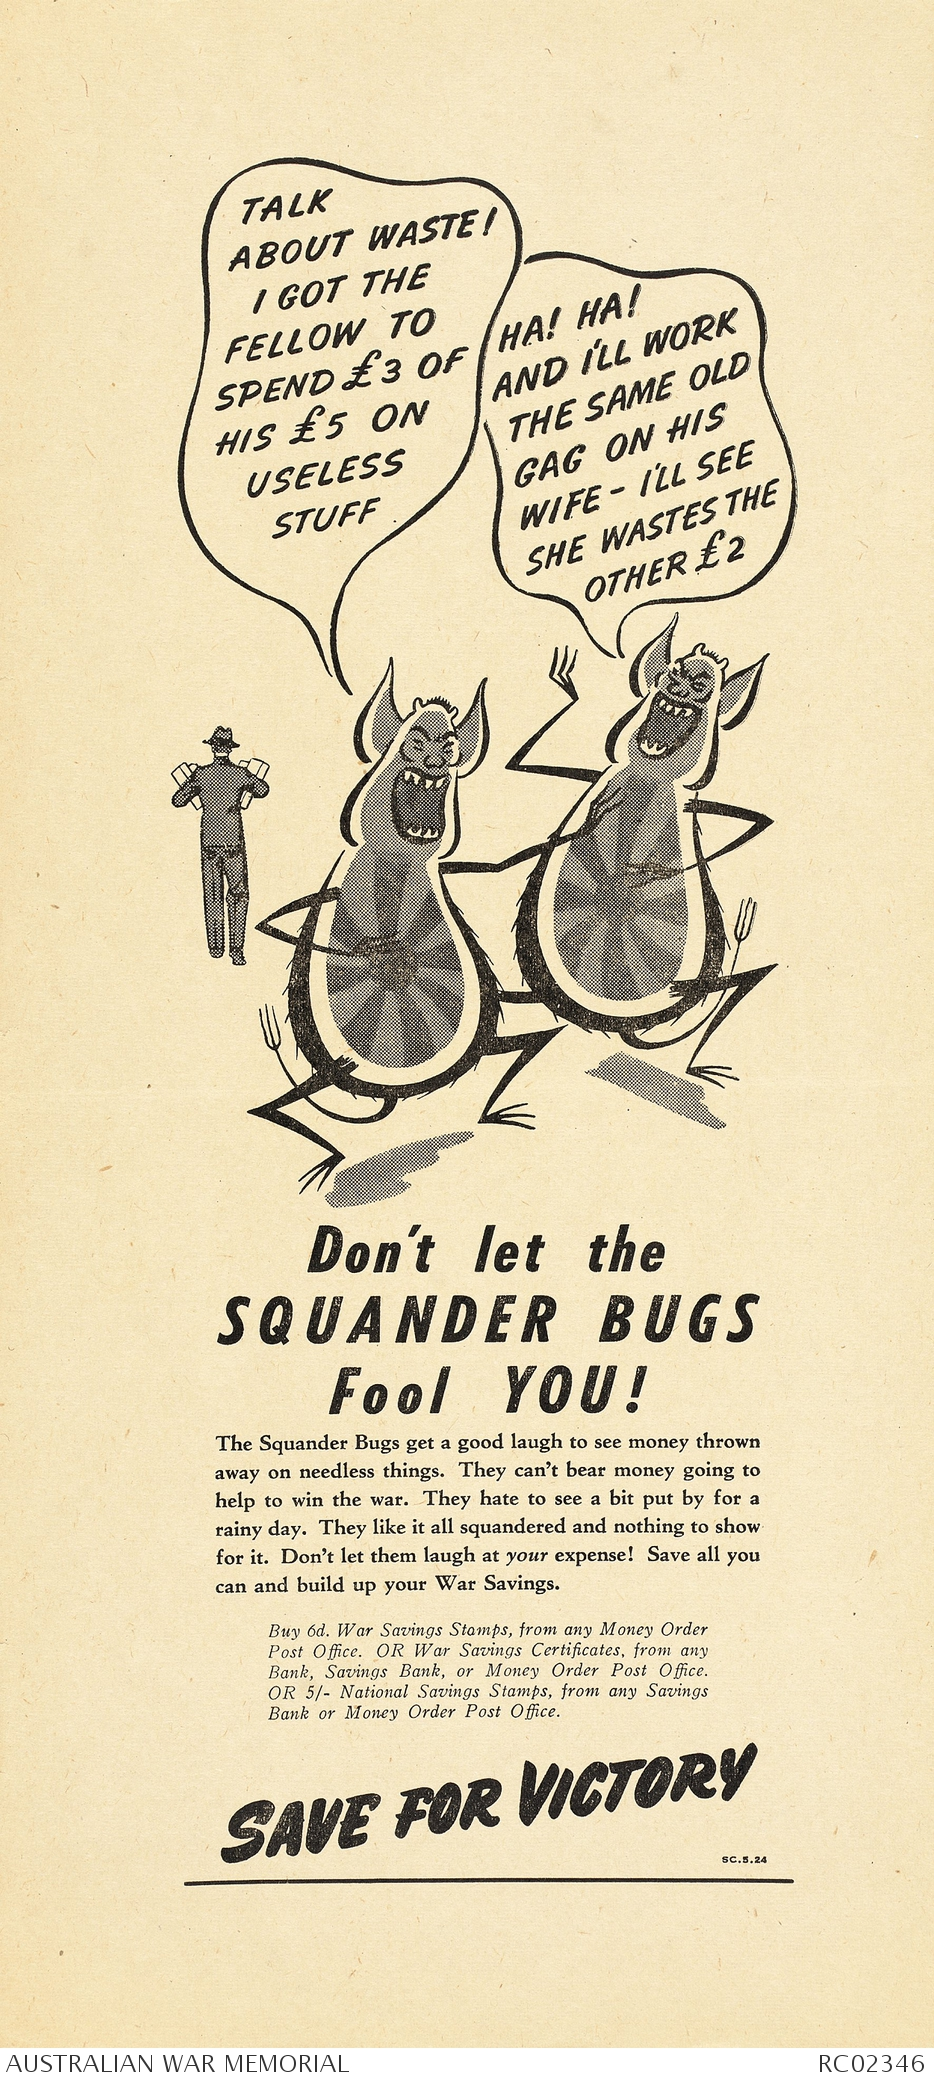 Don't let the Squander Bugs fool you!   The Australian War Memorial